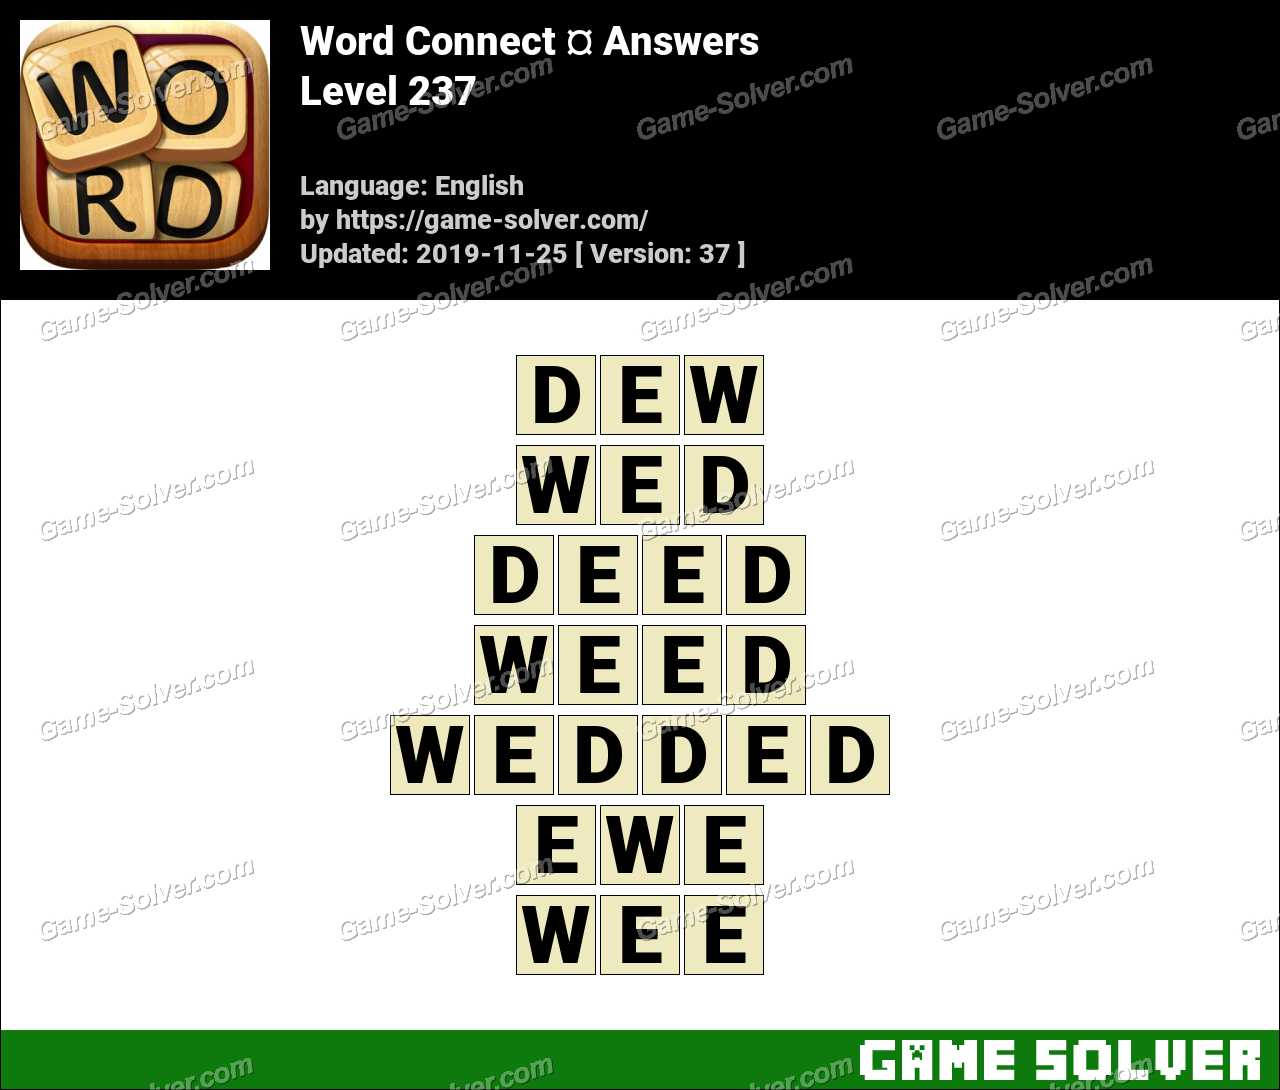 Word Connect Level 237 Answers